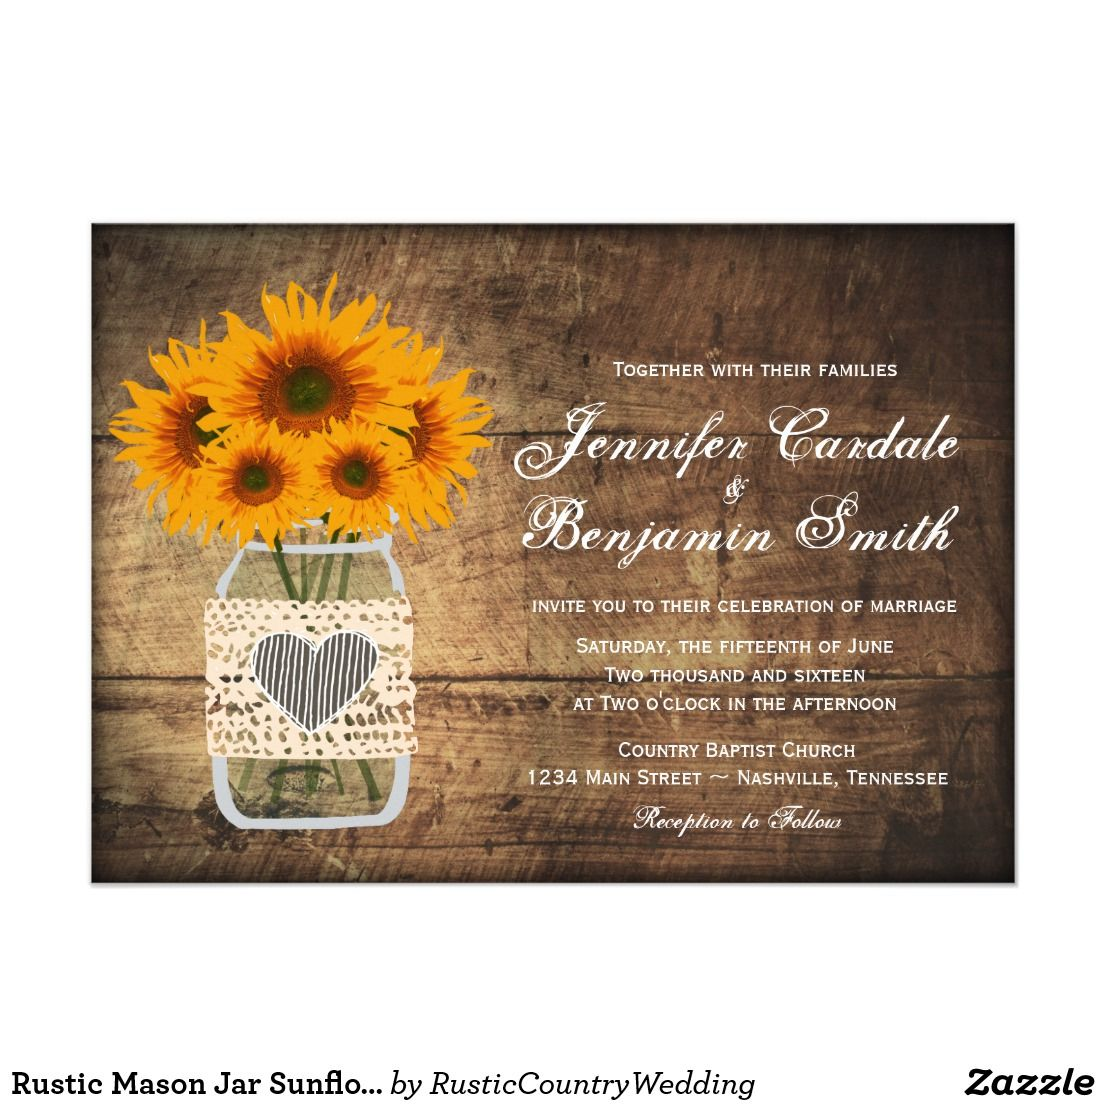 Rustic Mason Jar Sunflower Wedding Invitations Country Wedding